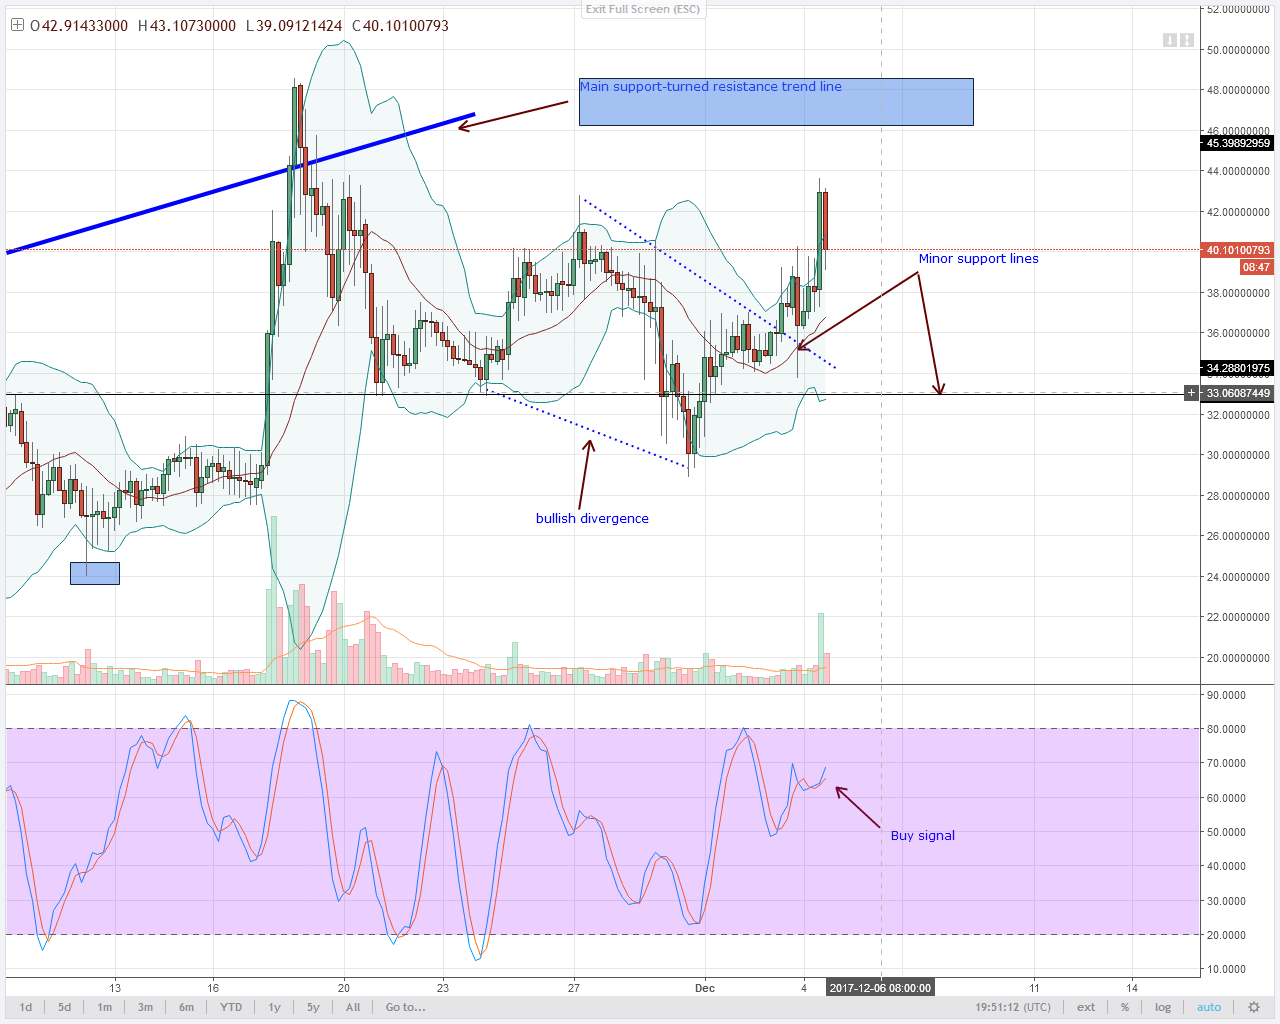 alt coin NEO Bulls 4HR chart technical analysis